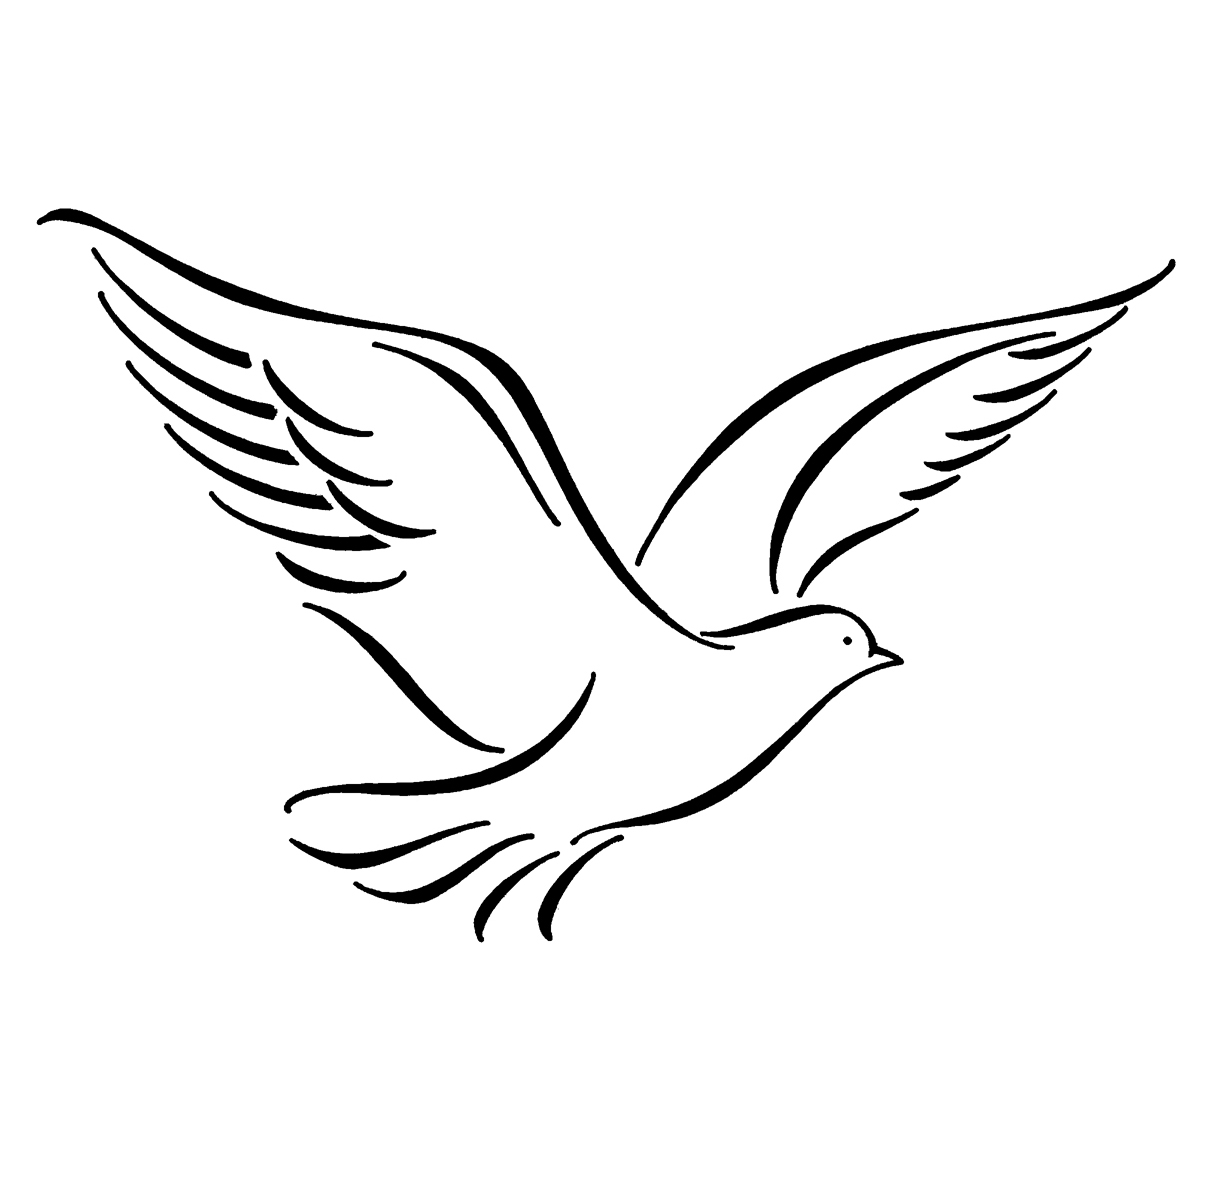 Line Art Dove : Dove line drawing clipart best